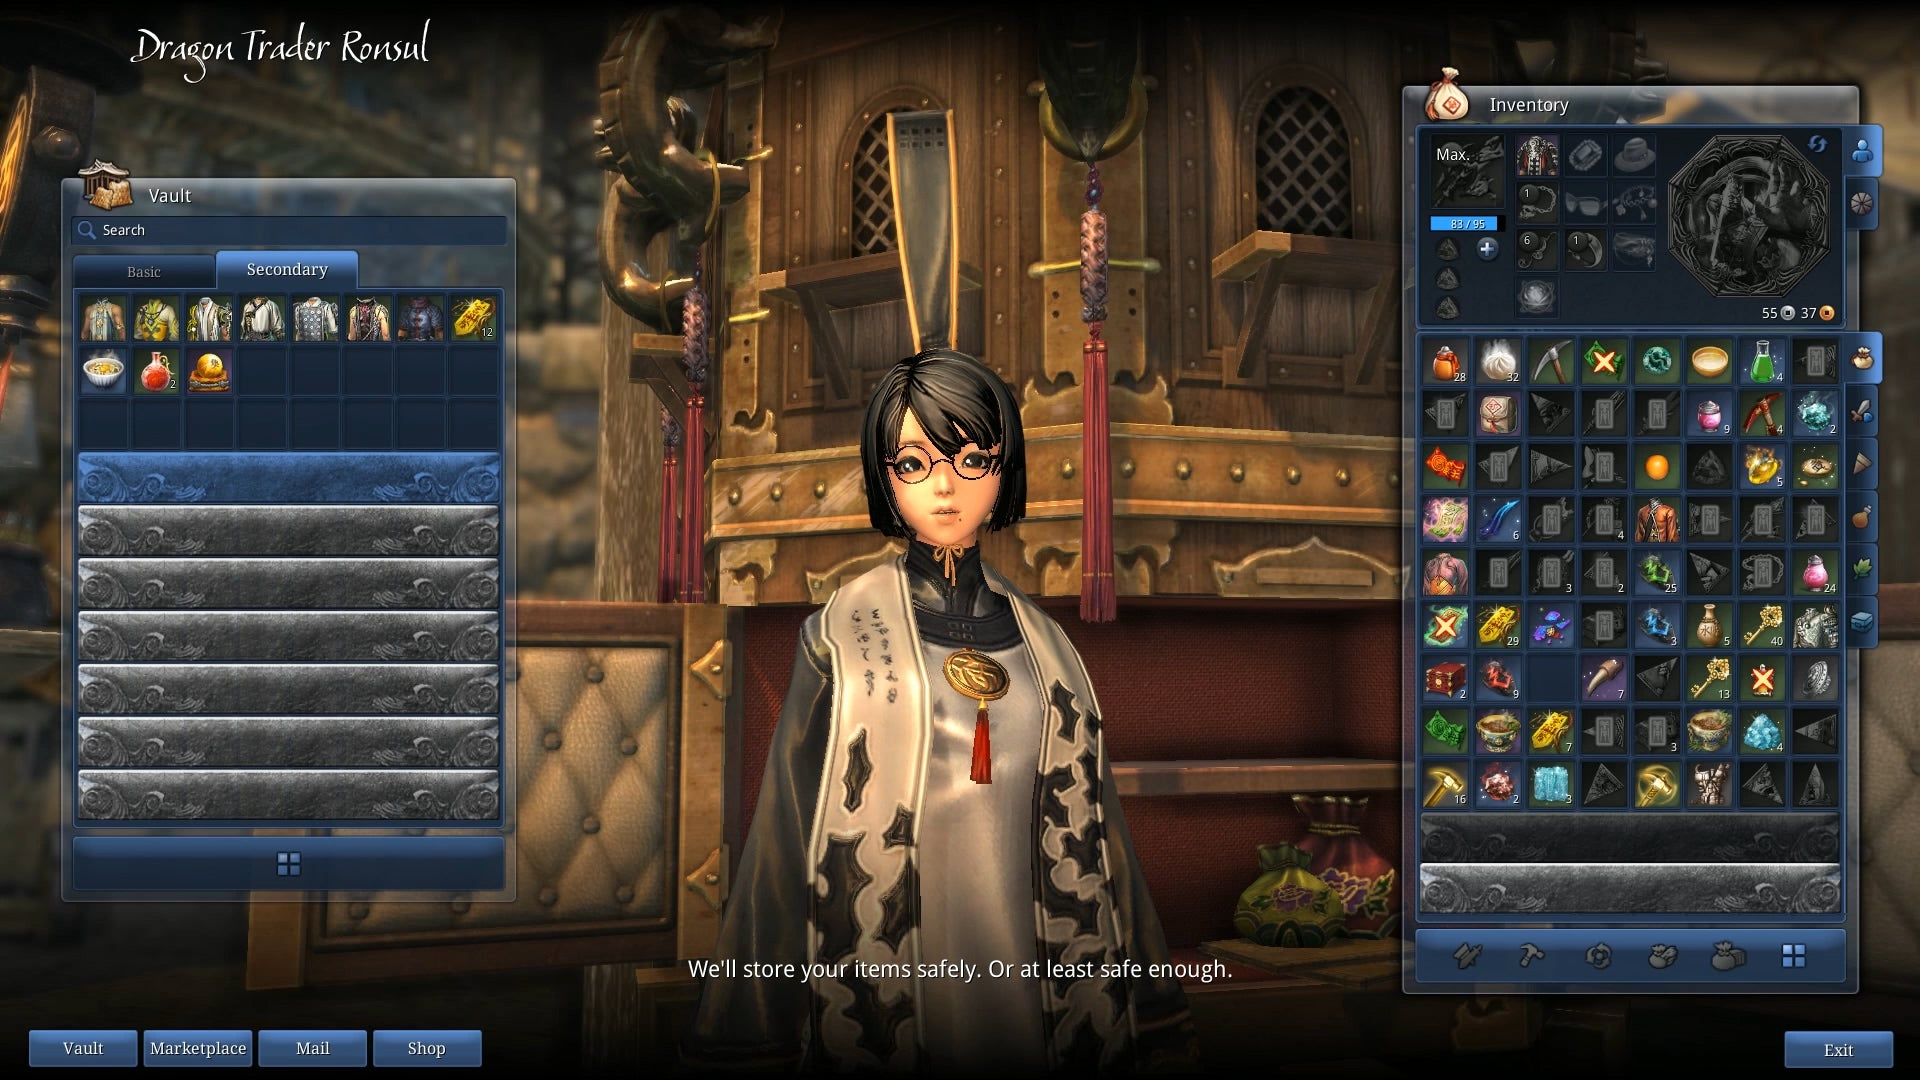 We Had A Good Run Blade & Soul, But I'm Out